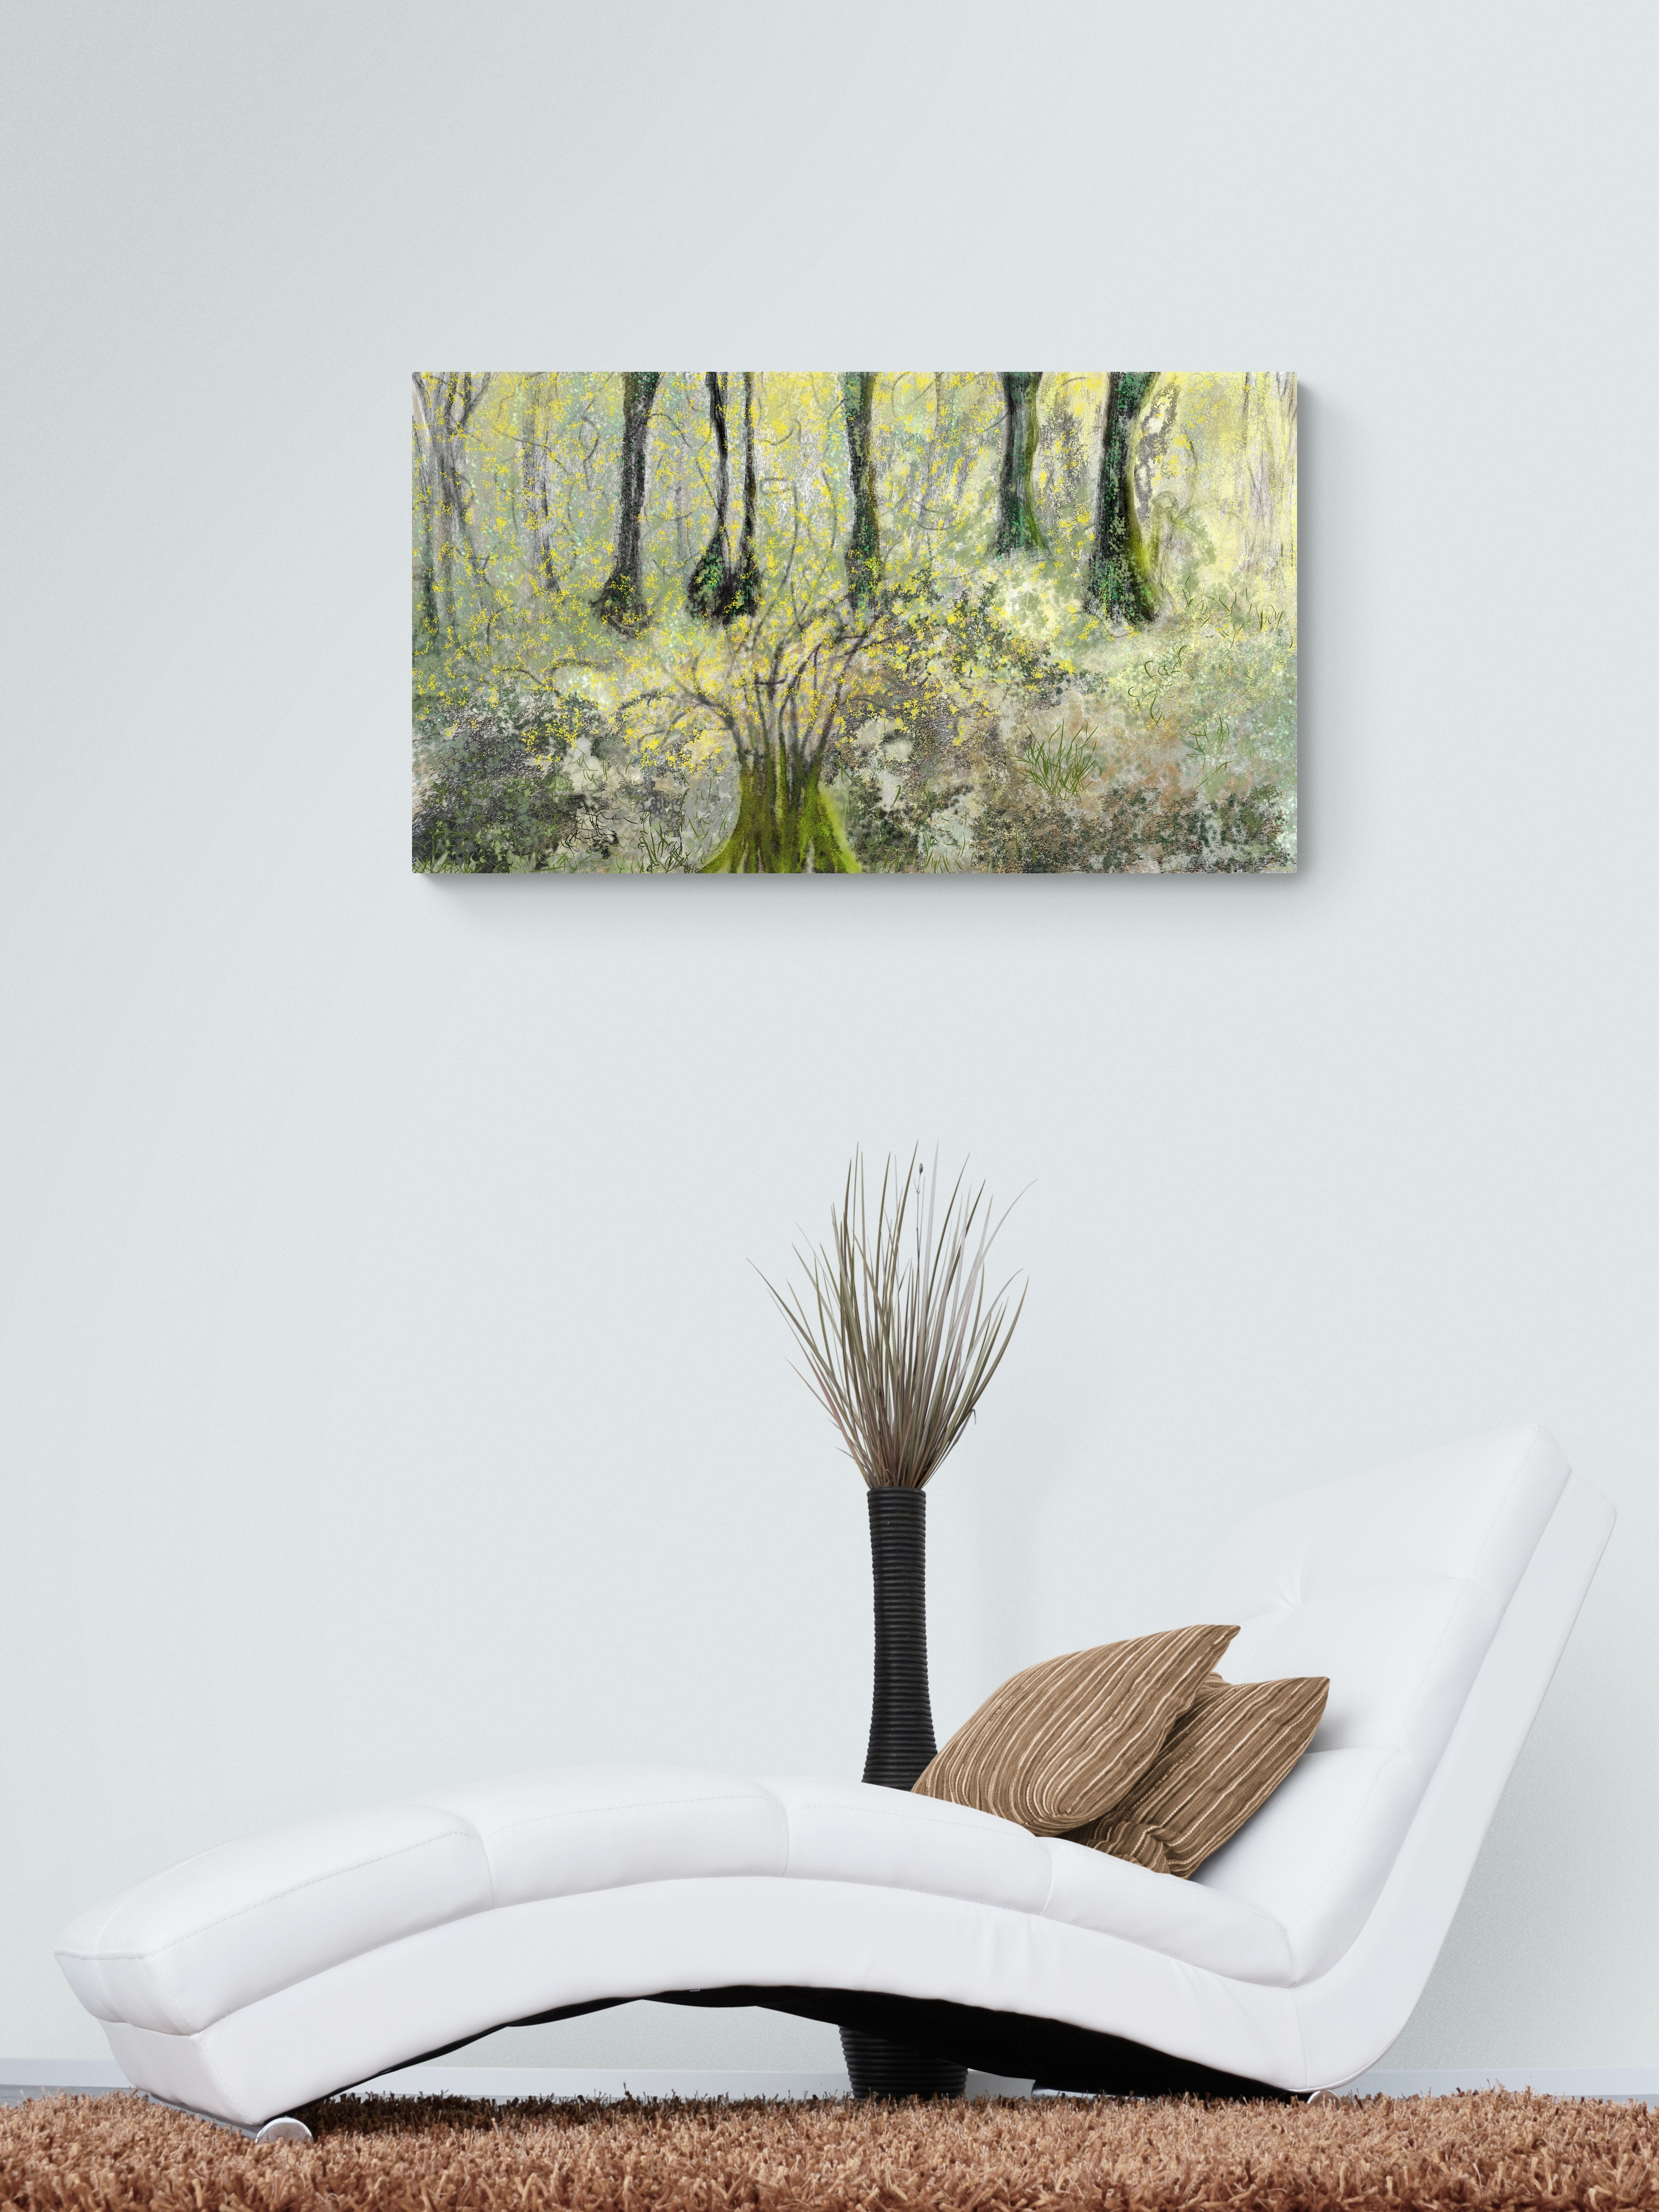 Mountain Mimosa - Abstract nature painting - Fascinating art print inspired by the beautiful mountain mimosas of Occitanie, France. artist: Anne Turlais - Limited edition of 300. Abstract nature painting printed on Dibond.